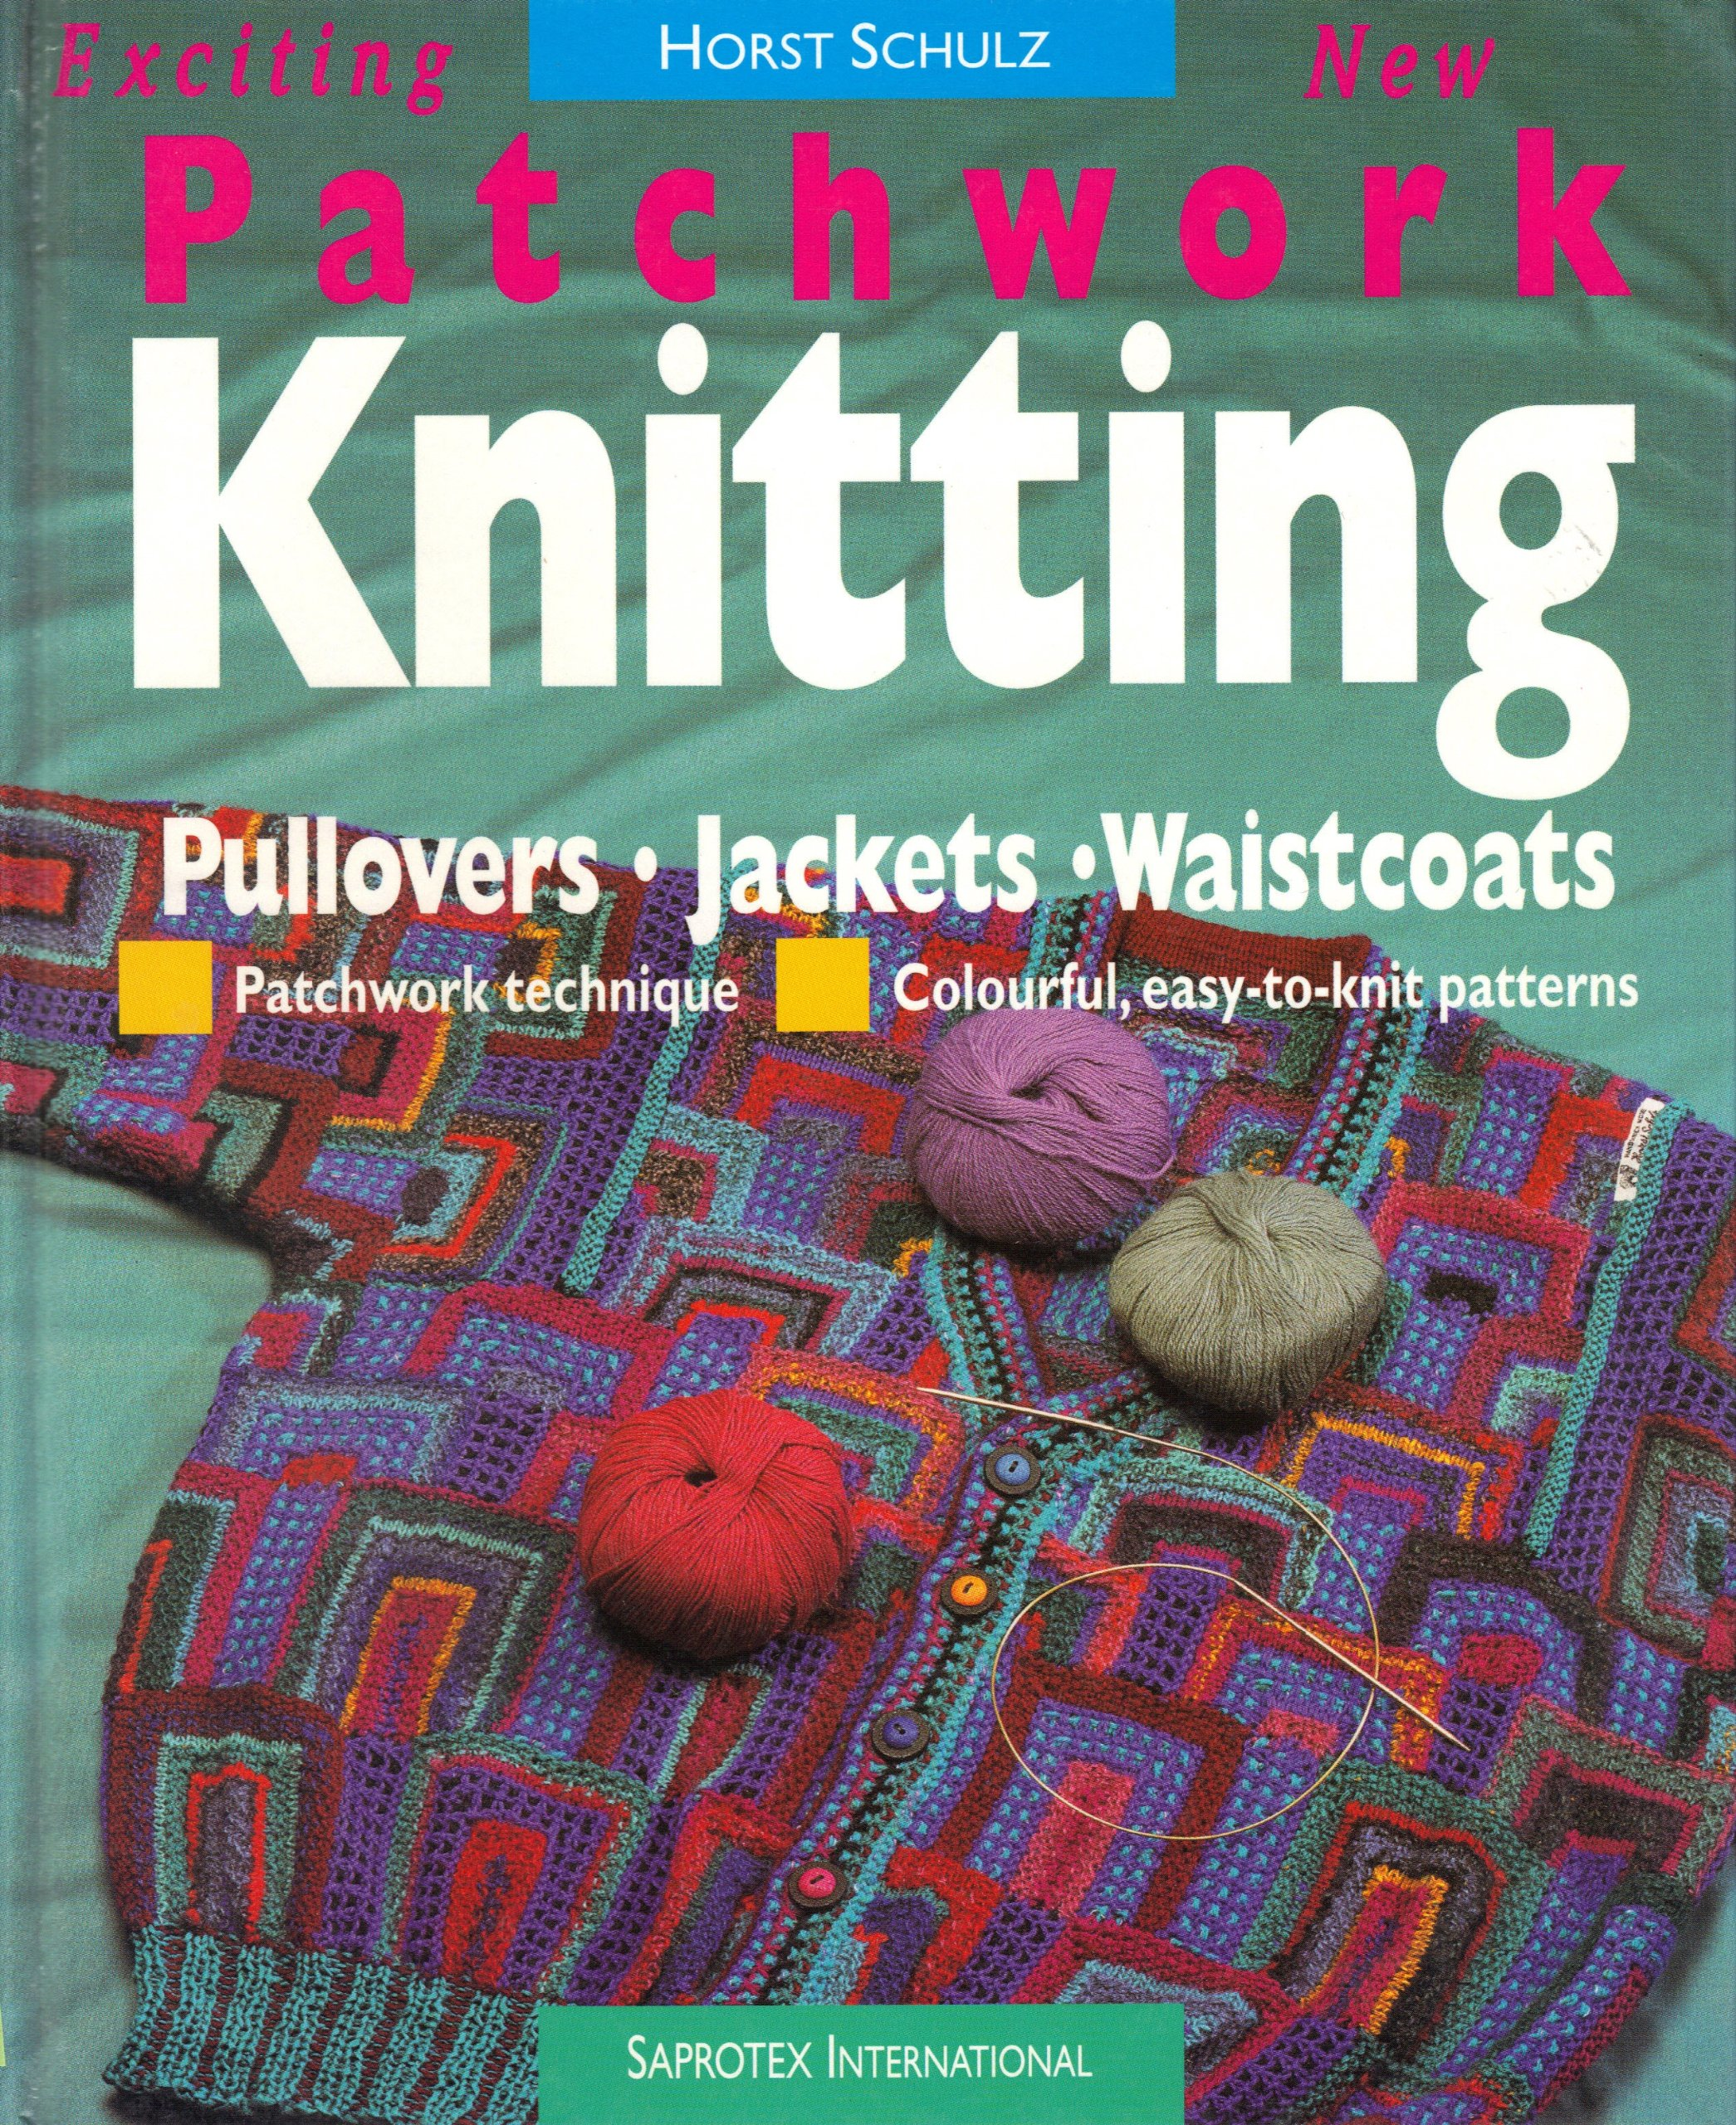 How To Make A Knitted Book Cover ~ Patchwork knitting horst schulz  amazon books